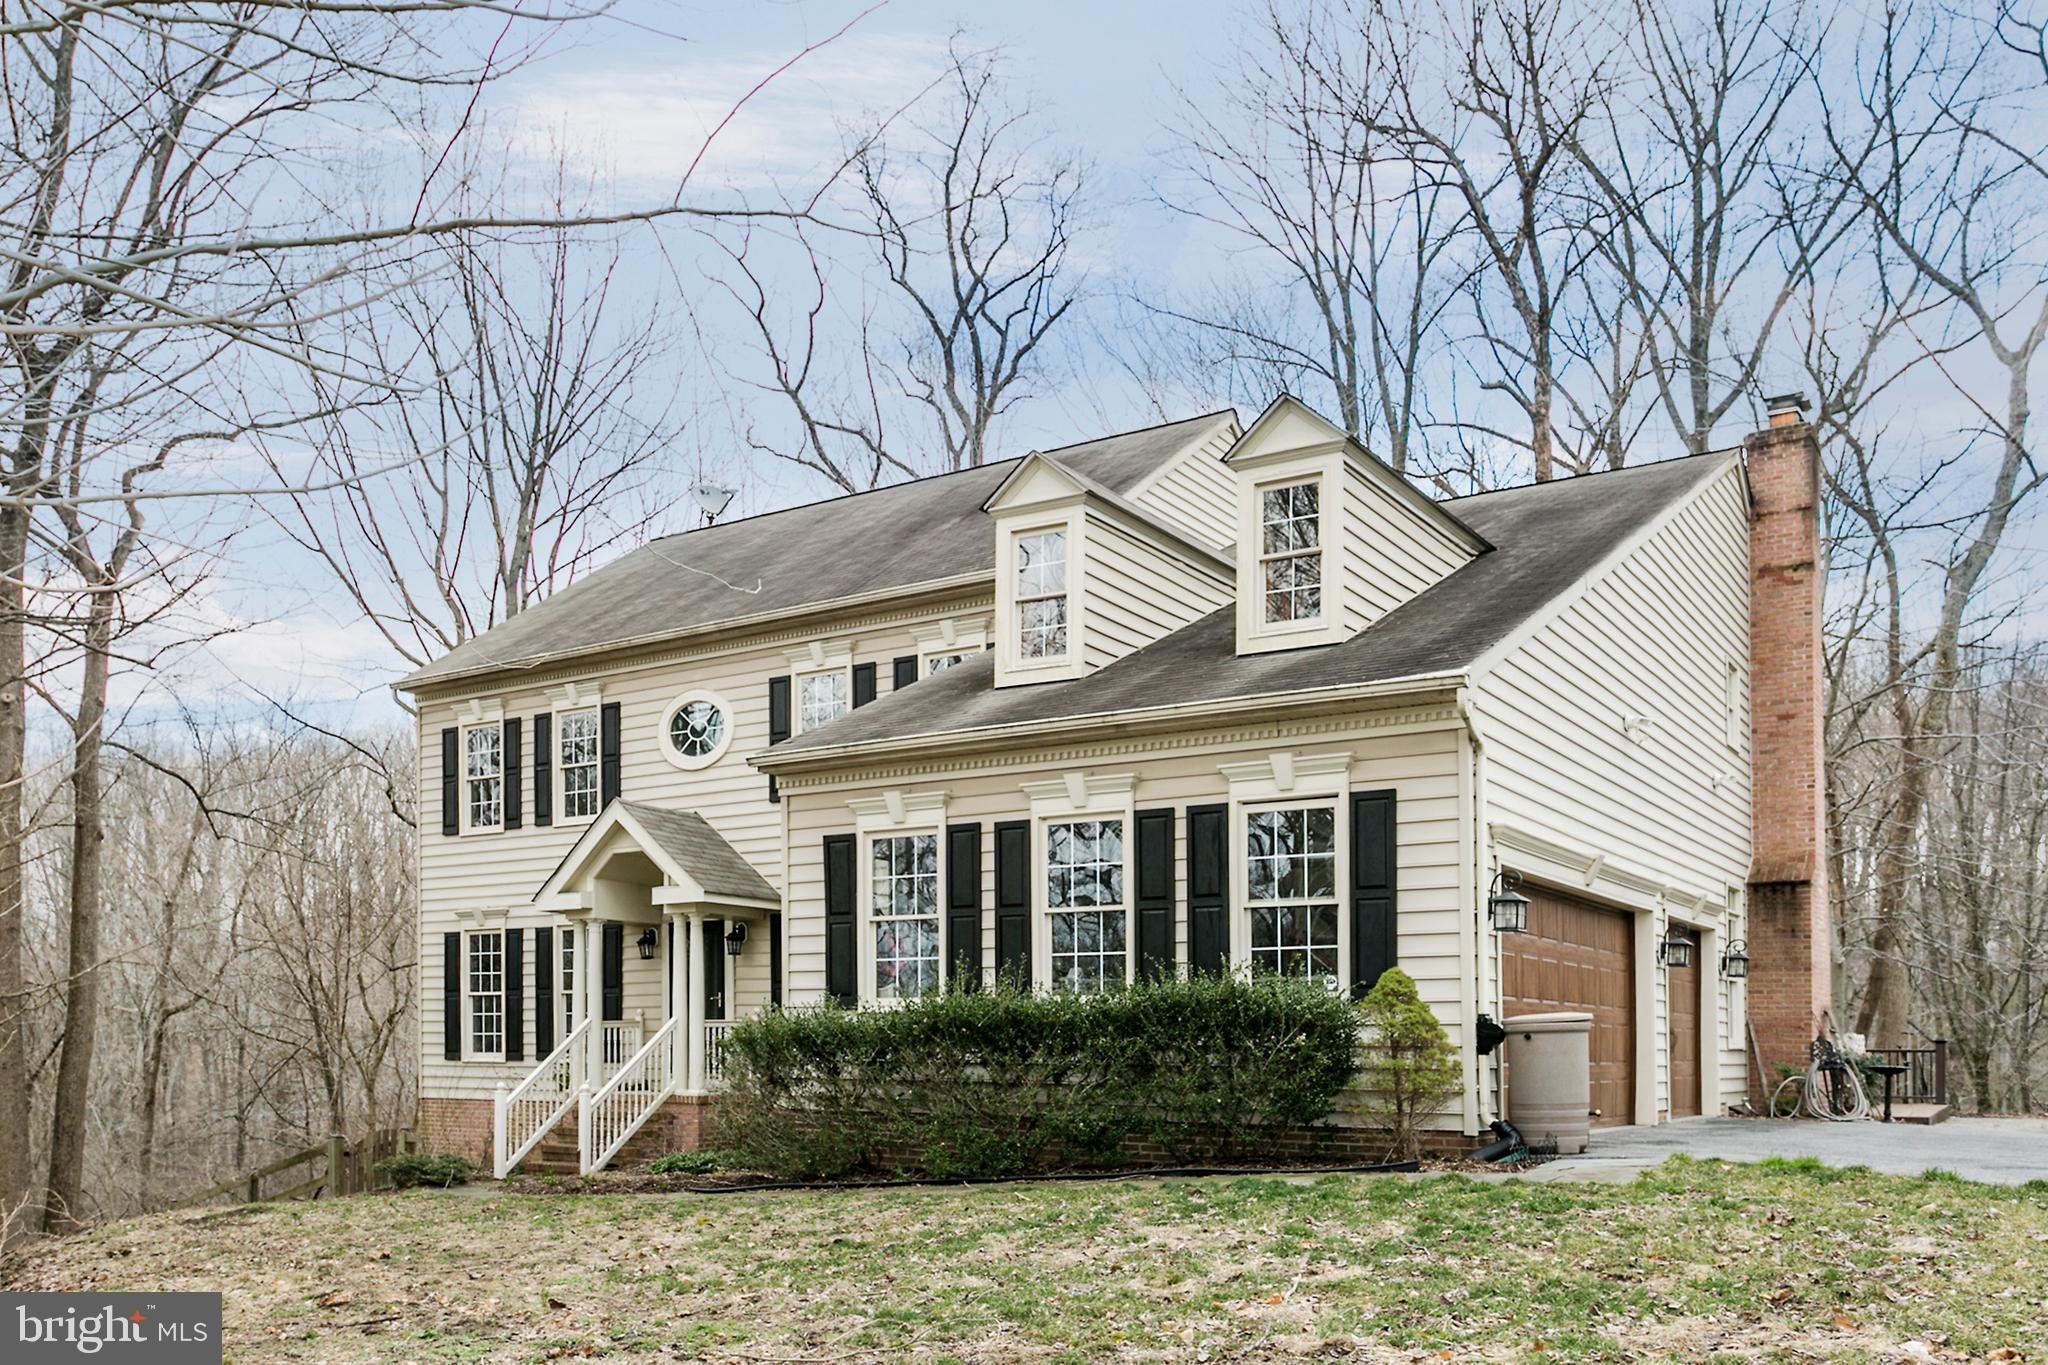 4621 BONNIE BRANCH ROAD, ELLICOTT CITY, MD 21043